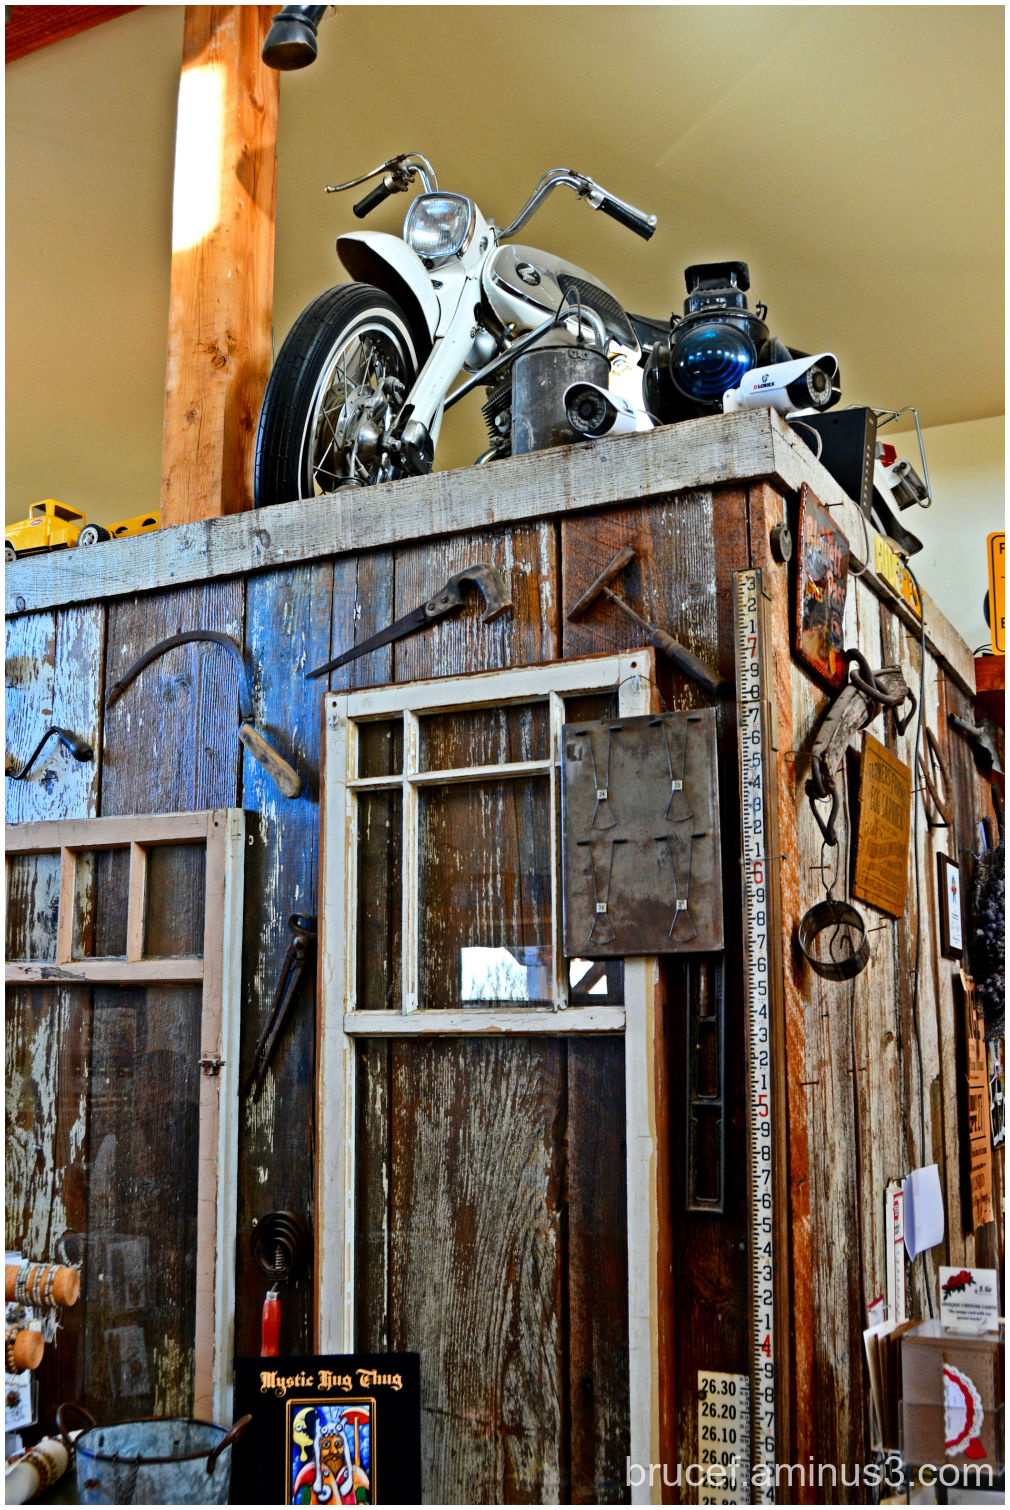 Antique Store with Motorcycle.